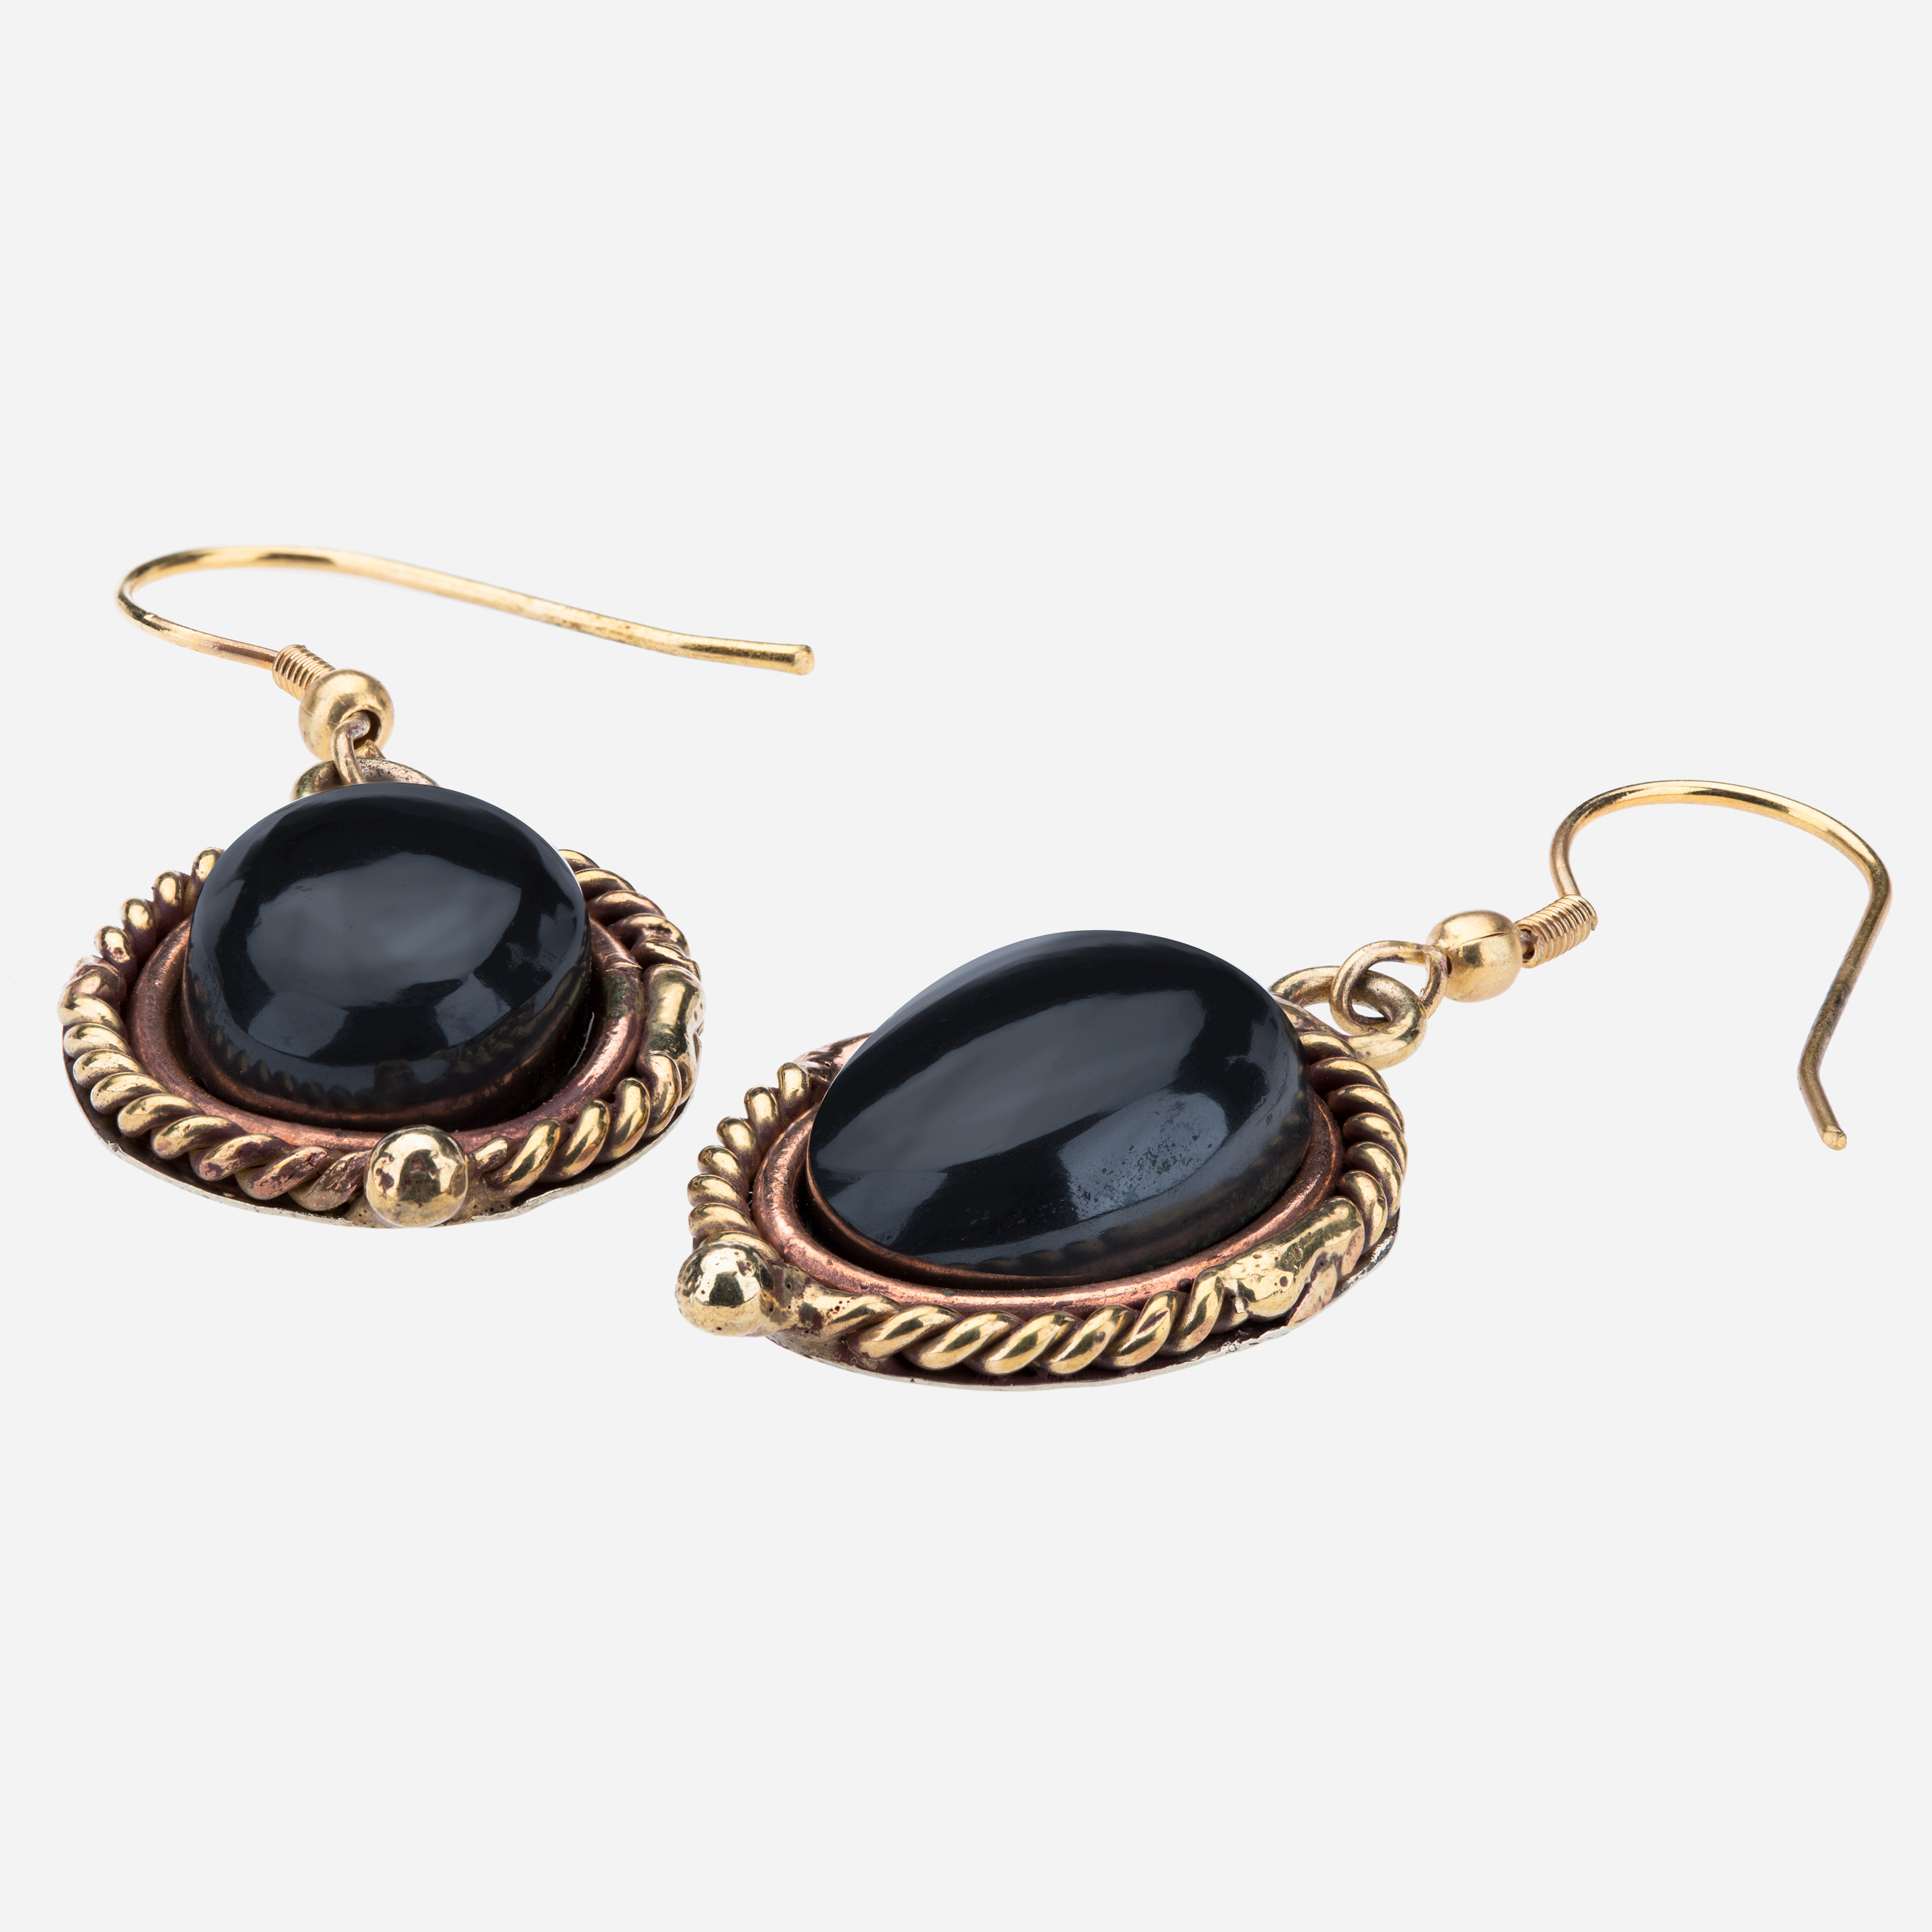 Tara Mesa Hematite Earrings Crafted in German Silver,Brass and Copper